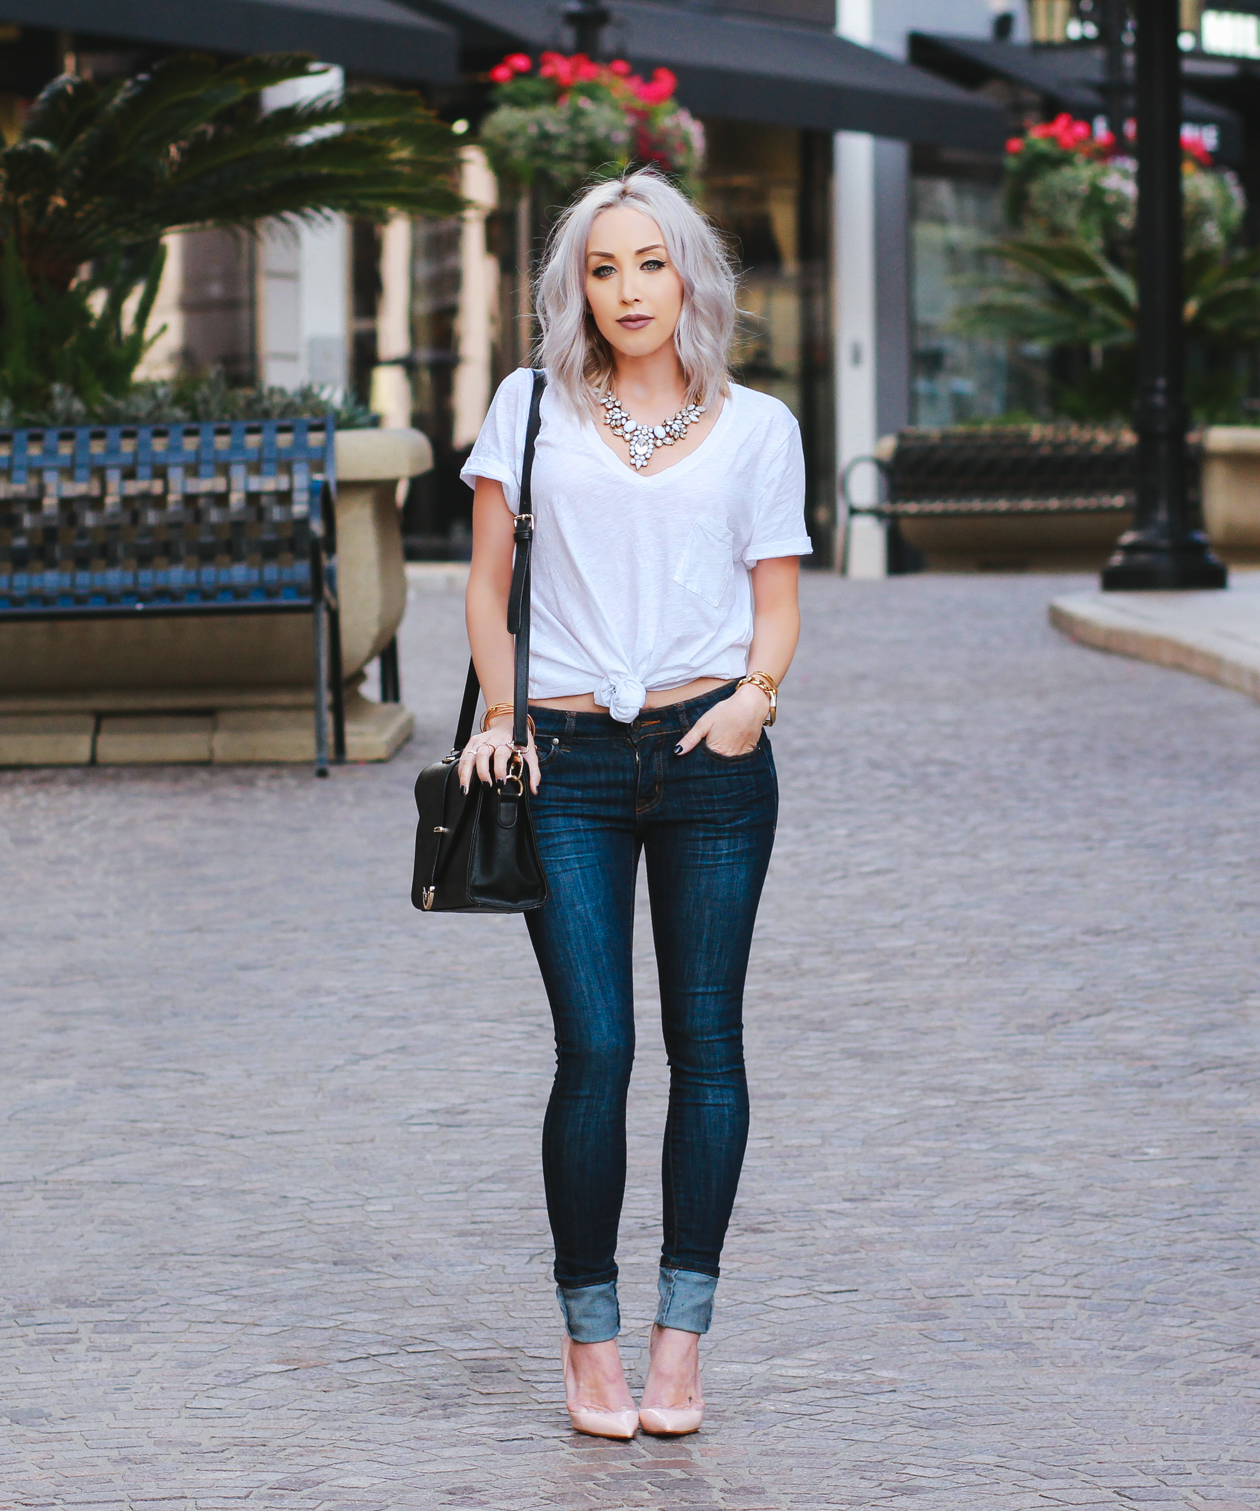 Jeans & a simple white tee on Rodeo Drive | BlondieintheCity.com